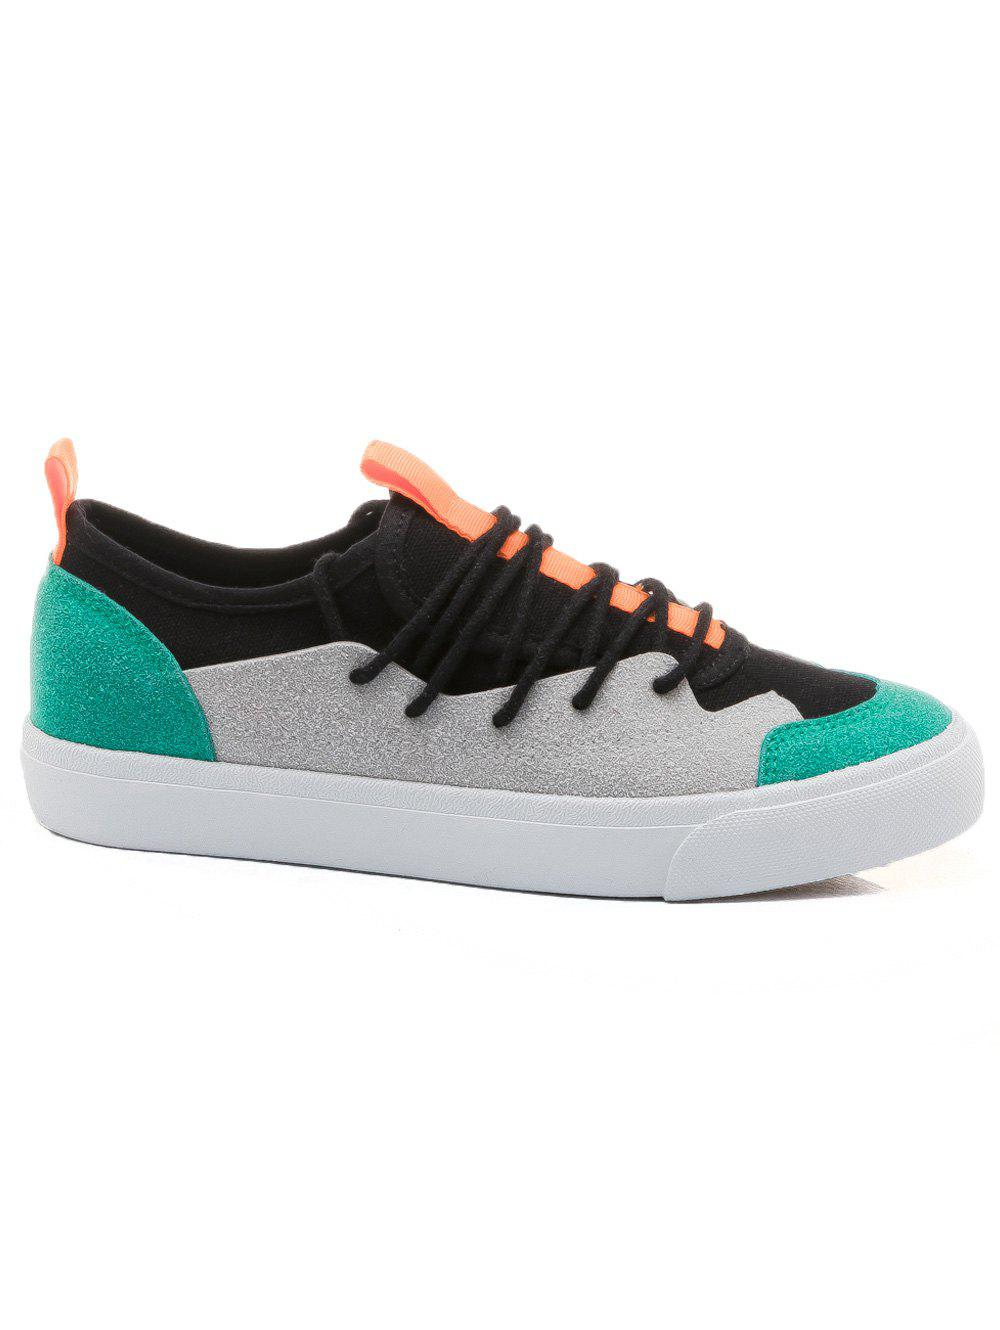 Color Block Low Heel Skate Shoes - GREEN 39